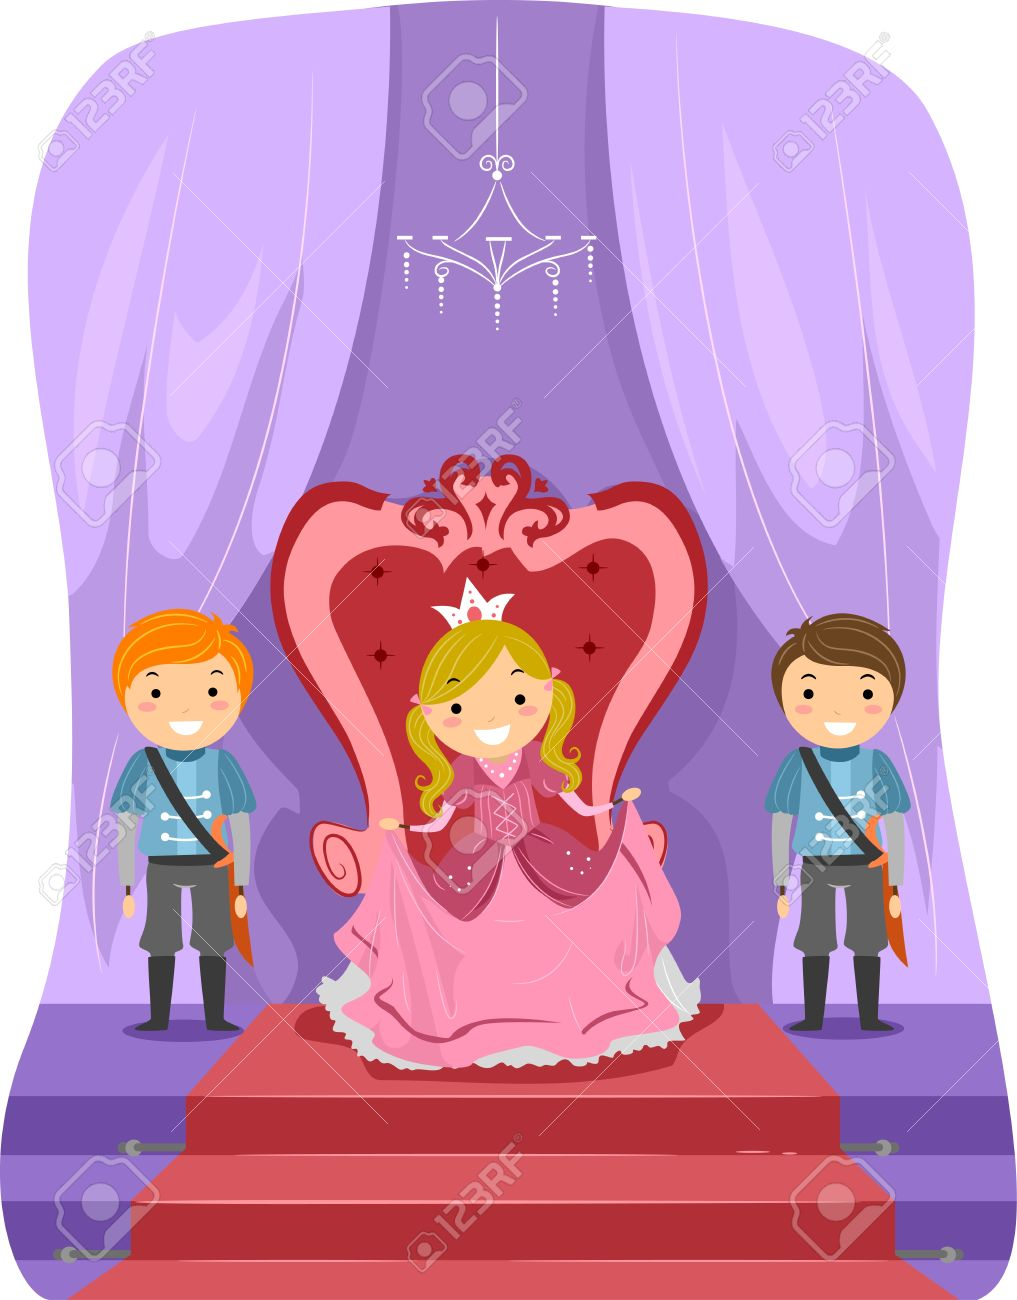 Illustration of a Girl Dressed as a Princess Stock Photo - 11197748